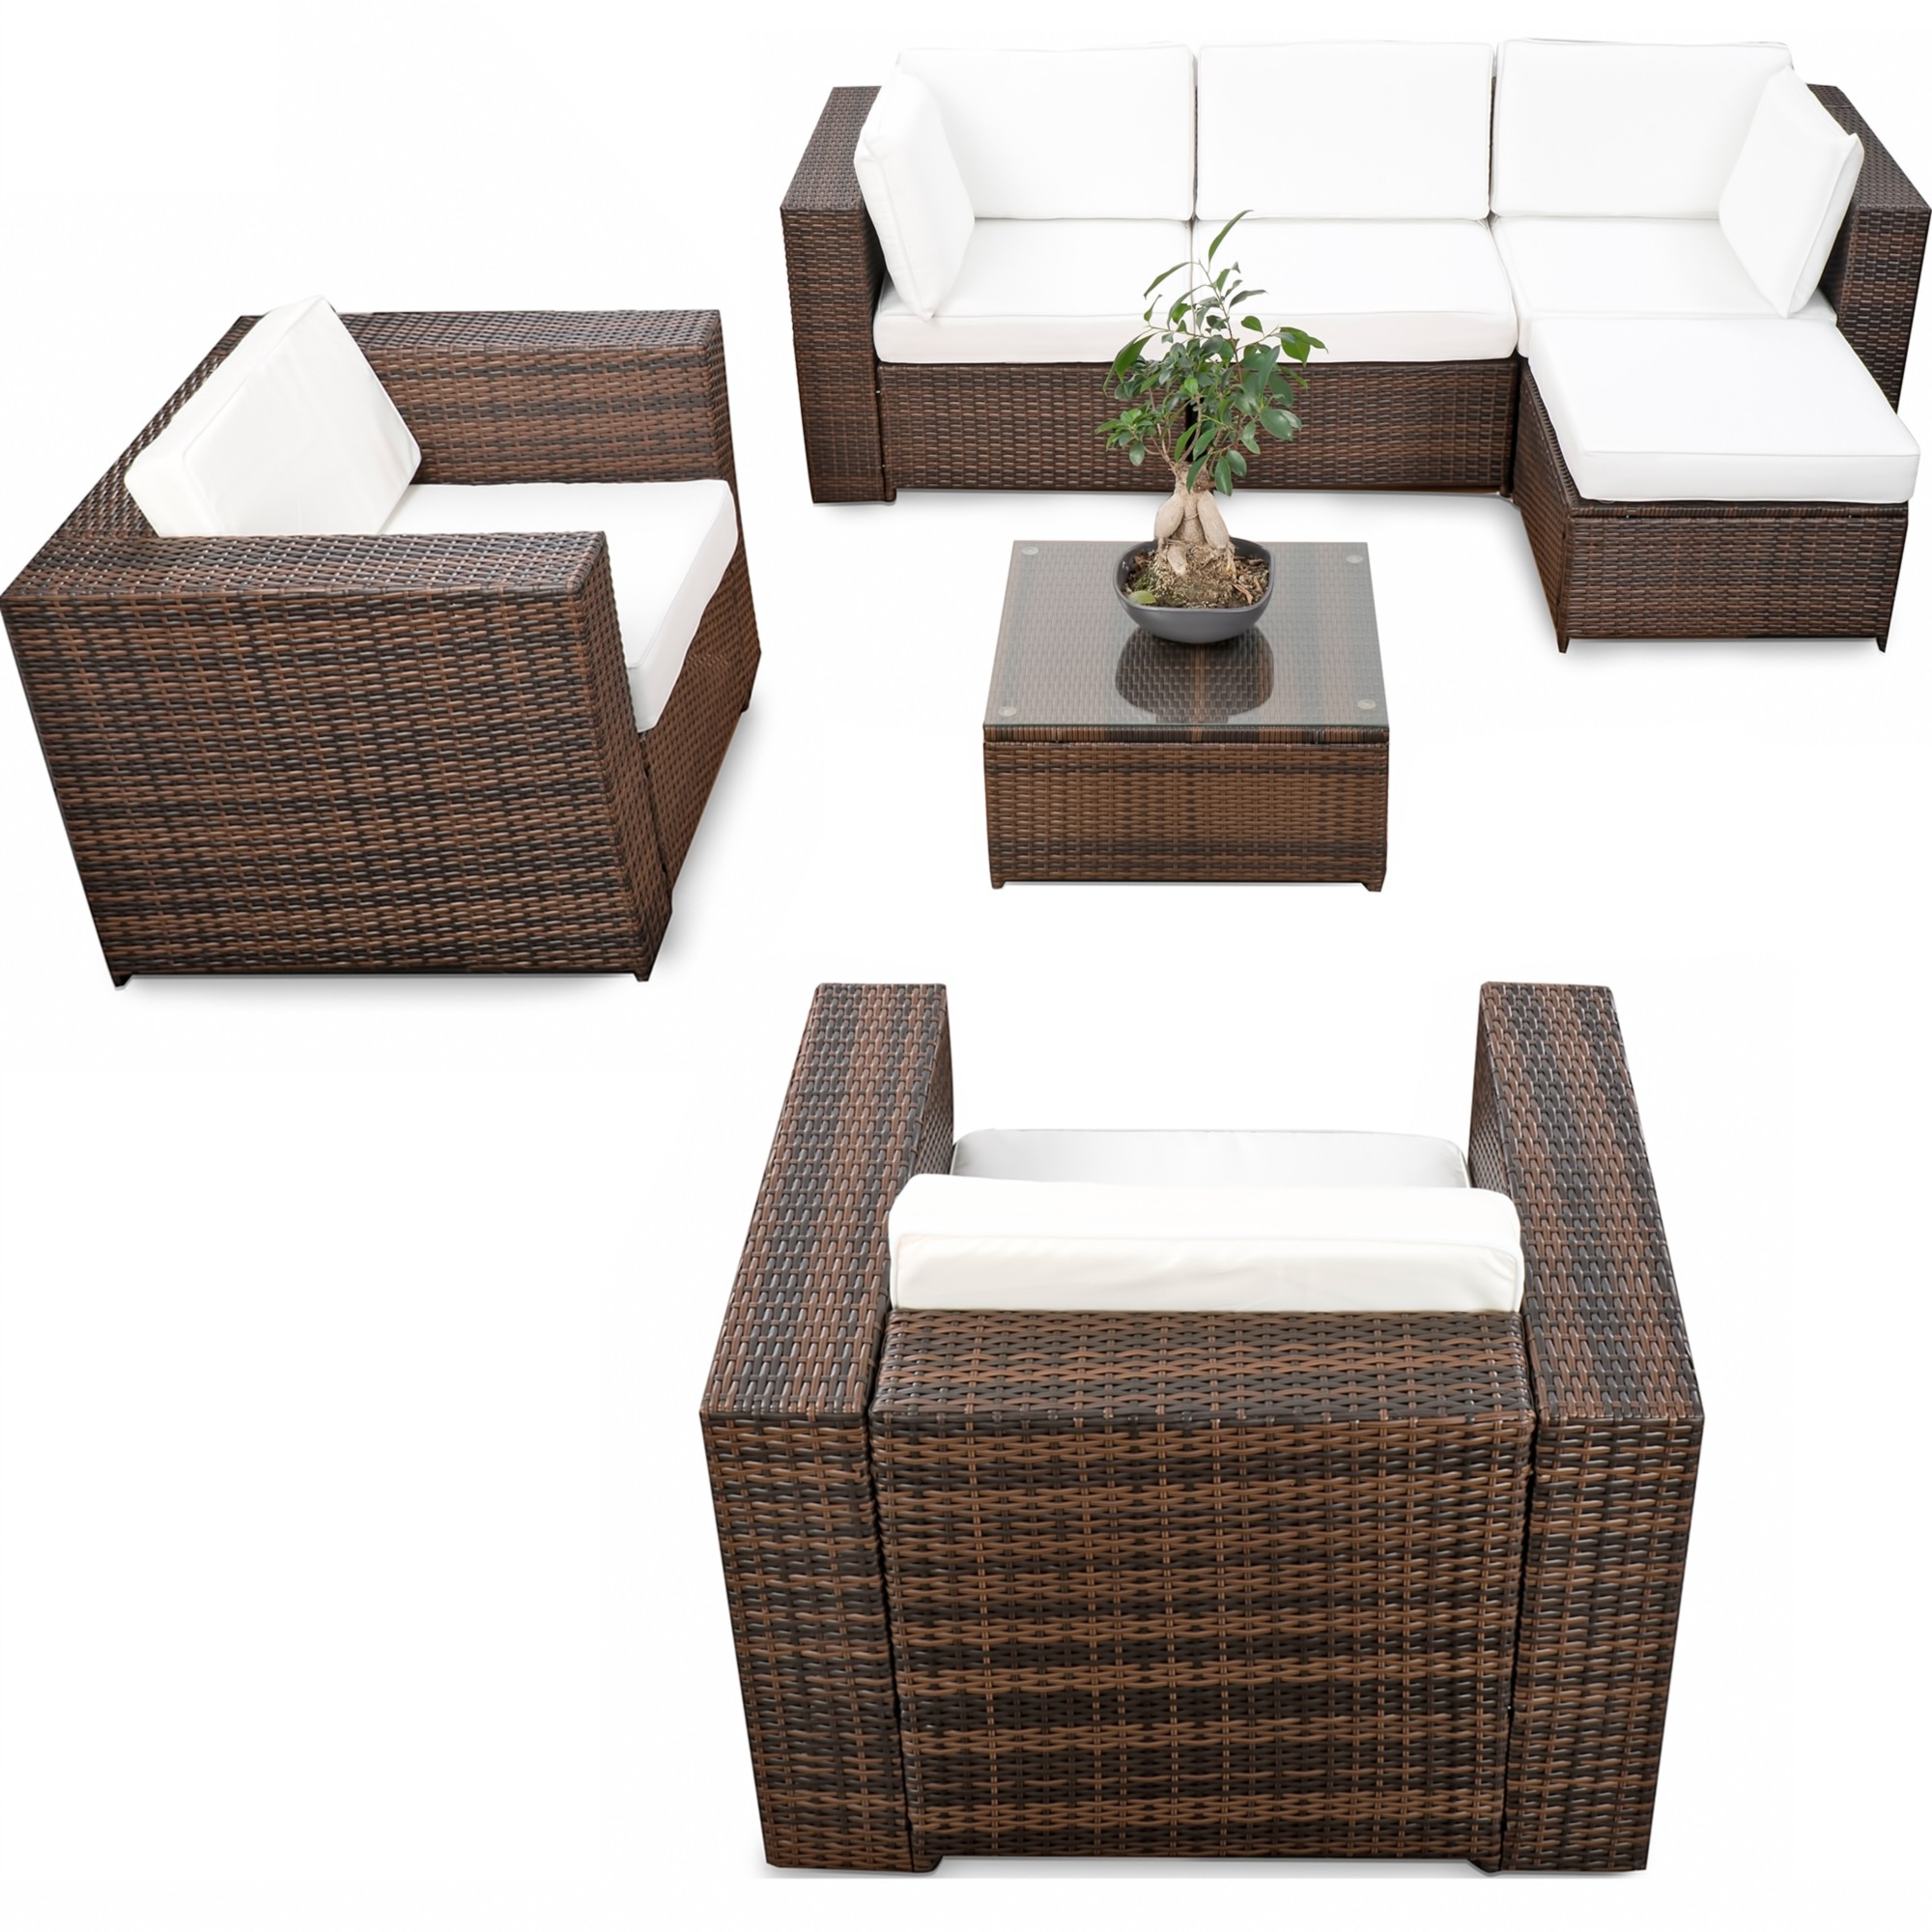 gartenm bel lounge set g nstig loungeset gartenm bel kaufen. Black Bedroom Furniture Sets. Home Design Ideas